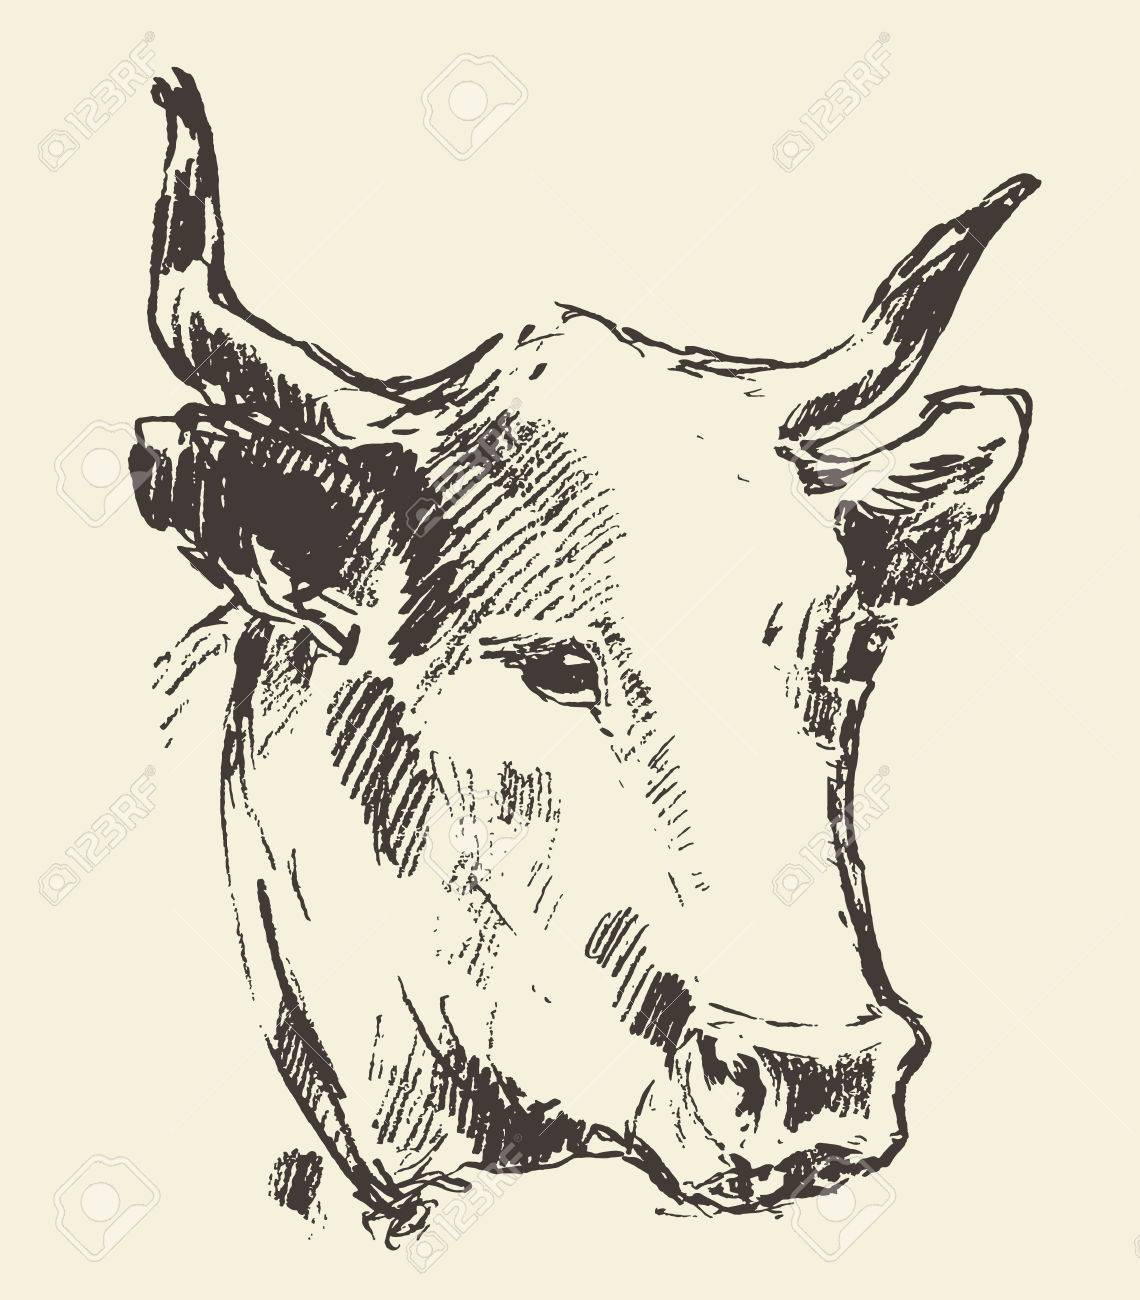 1140x1300 Cow Head With Bell Dutch Cattle Breed Vintage Illustration